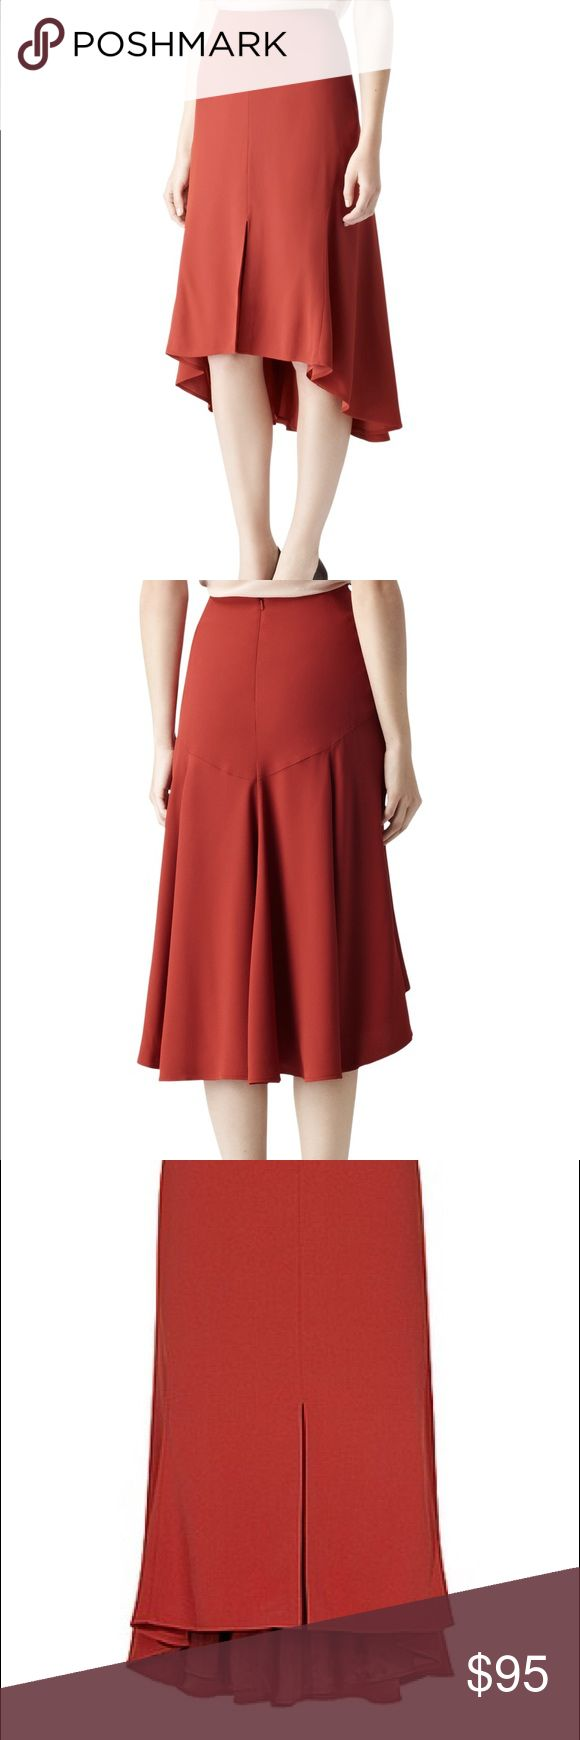 Chic Paprika Fit + Flare Stephanie Skirt Reiss fit and flare skirt. The Stephanie in an autumnal shade of paprika, a modern take on a fit and flare shape. This fluid style with body-shaping panels, has a centre slit to the front and a dipped back with a flippy flared hem. It secures to the back with a concealed zip. A favorite label of Catherine, Duchess of Cambridge. Viscose and acetate blend. Excellent, like-new condition--worn once! UK Size 10. Offers welcome within reason. Reiss Skirts